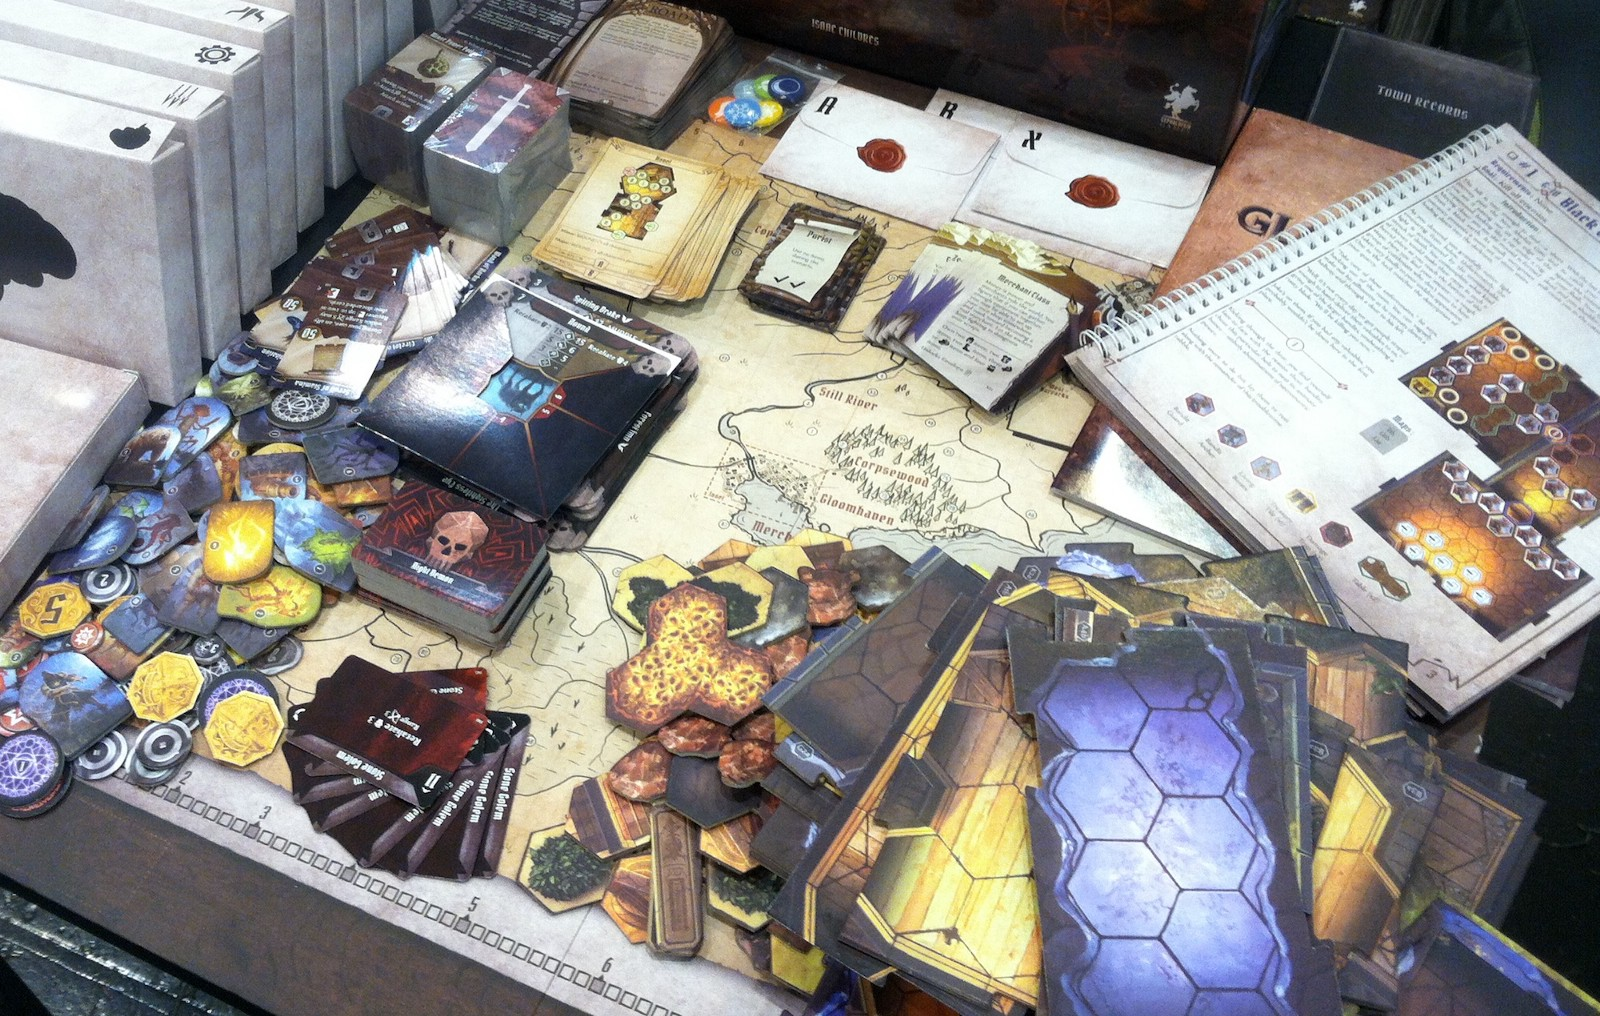 Just some of the components you get in the Gloomhaven base set.  It's a whole lot of game!